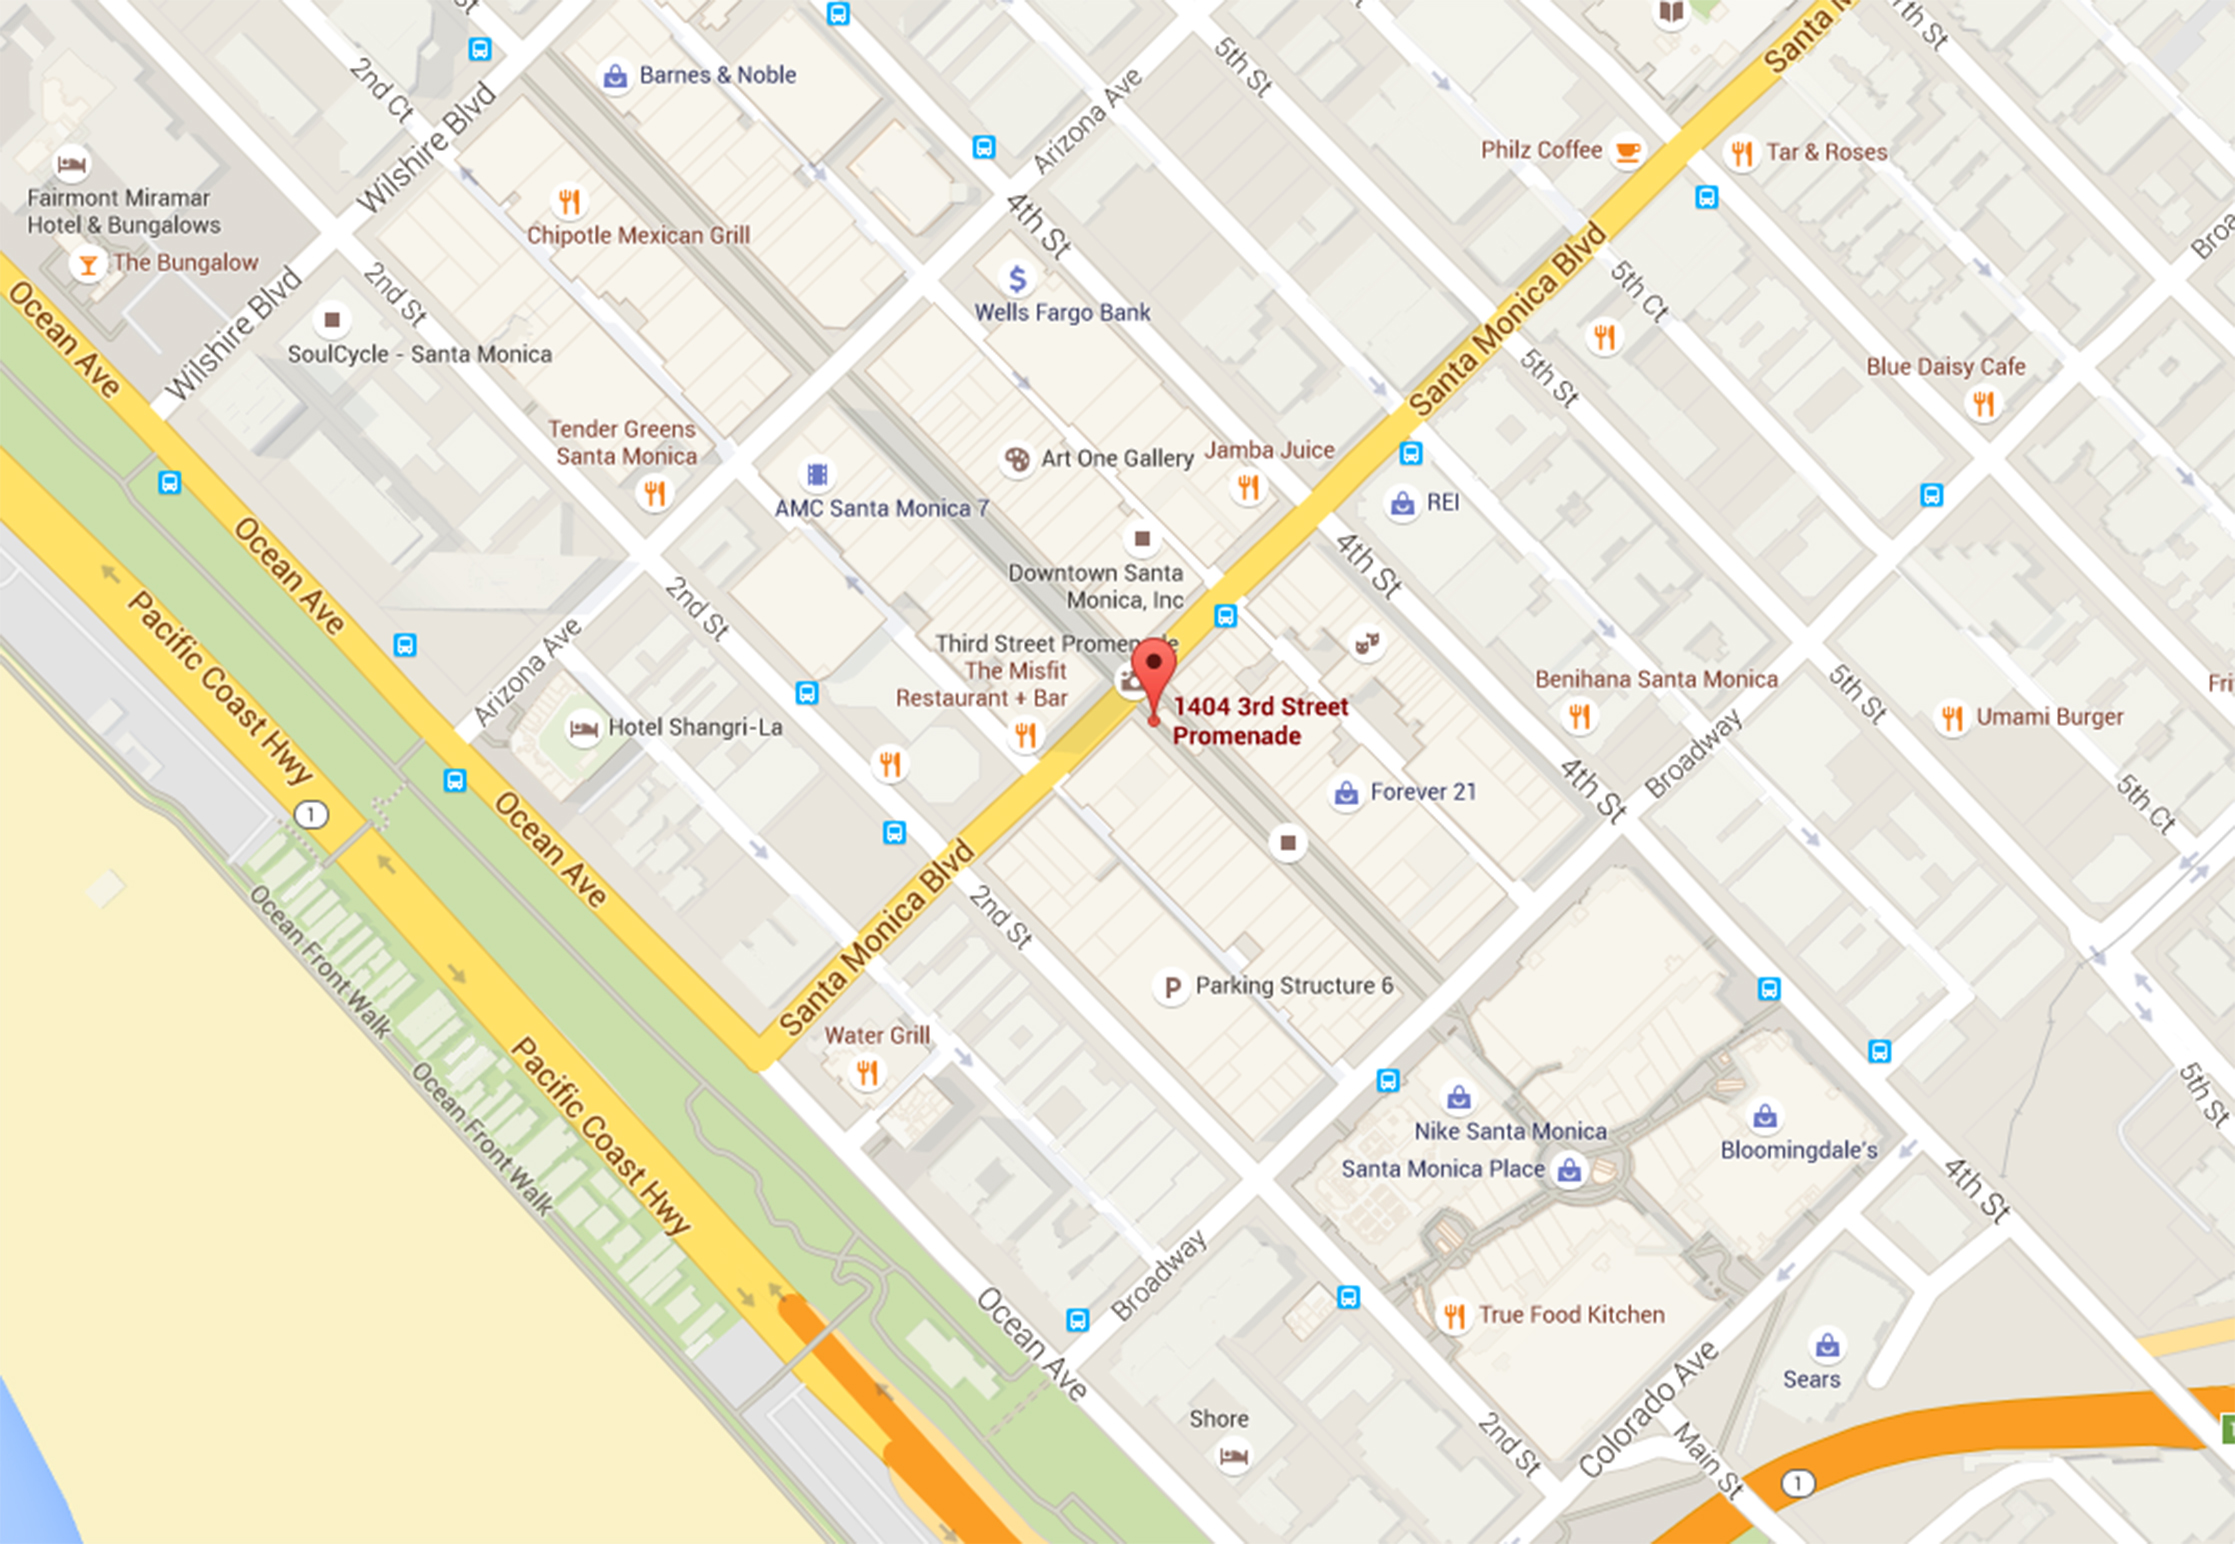 map to Santa Monica Street Map on westwood santa monica map, hotel santa monica map, santa monica tourist map, 7984 santa monica blvd map, santa monica street parking, ucla santa monica map,